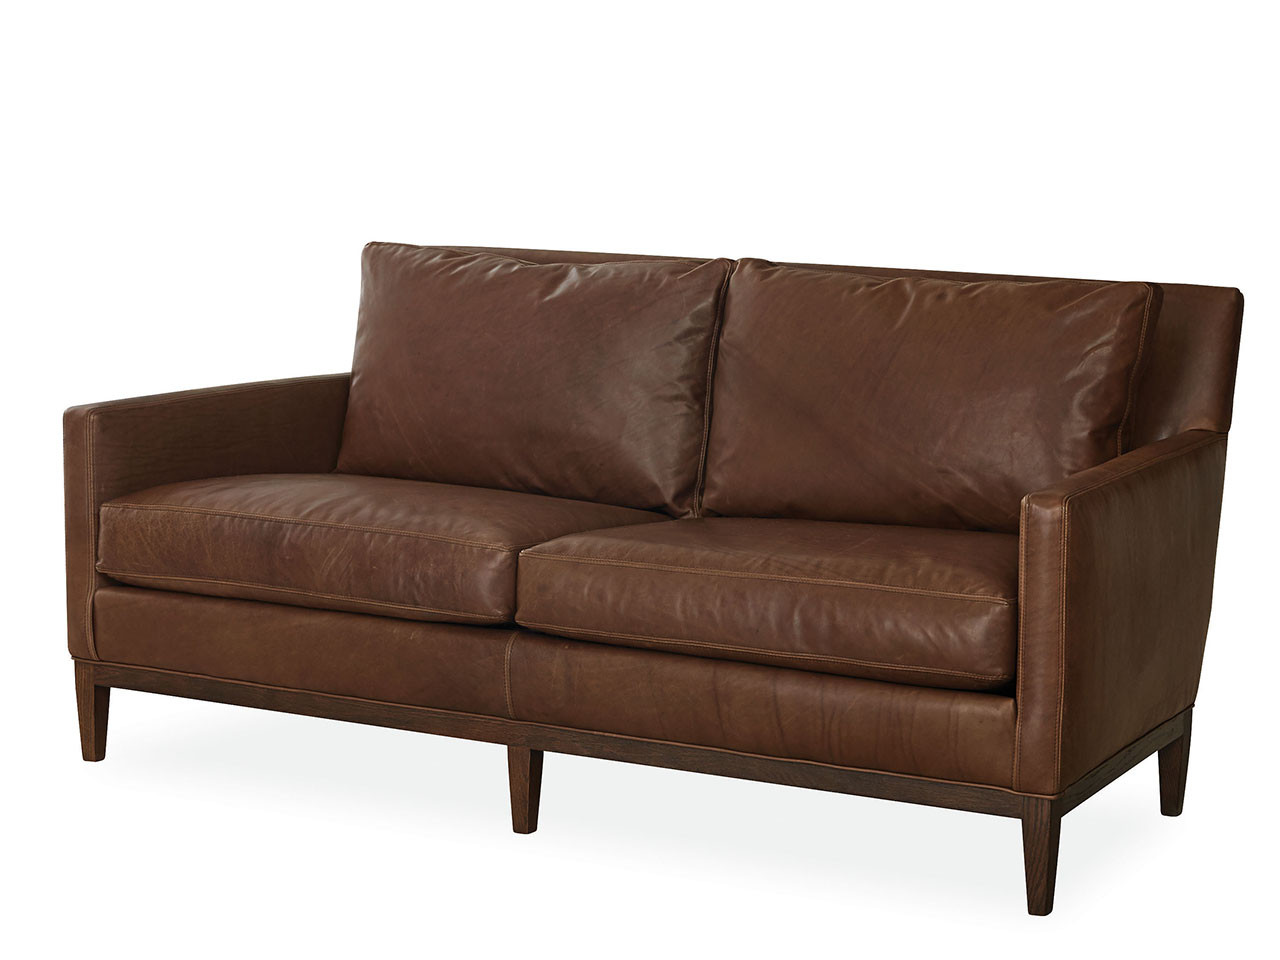 Welles Leather Apartment Sofa | Country Willow